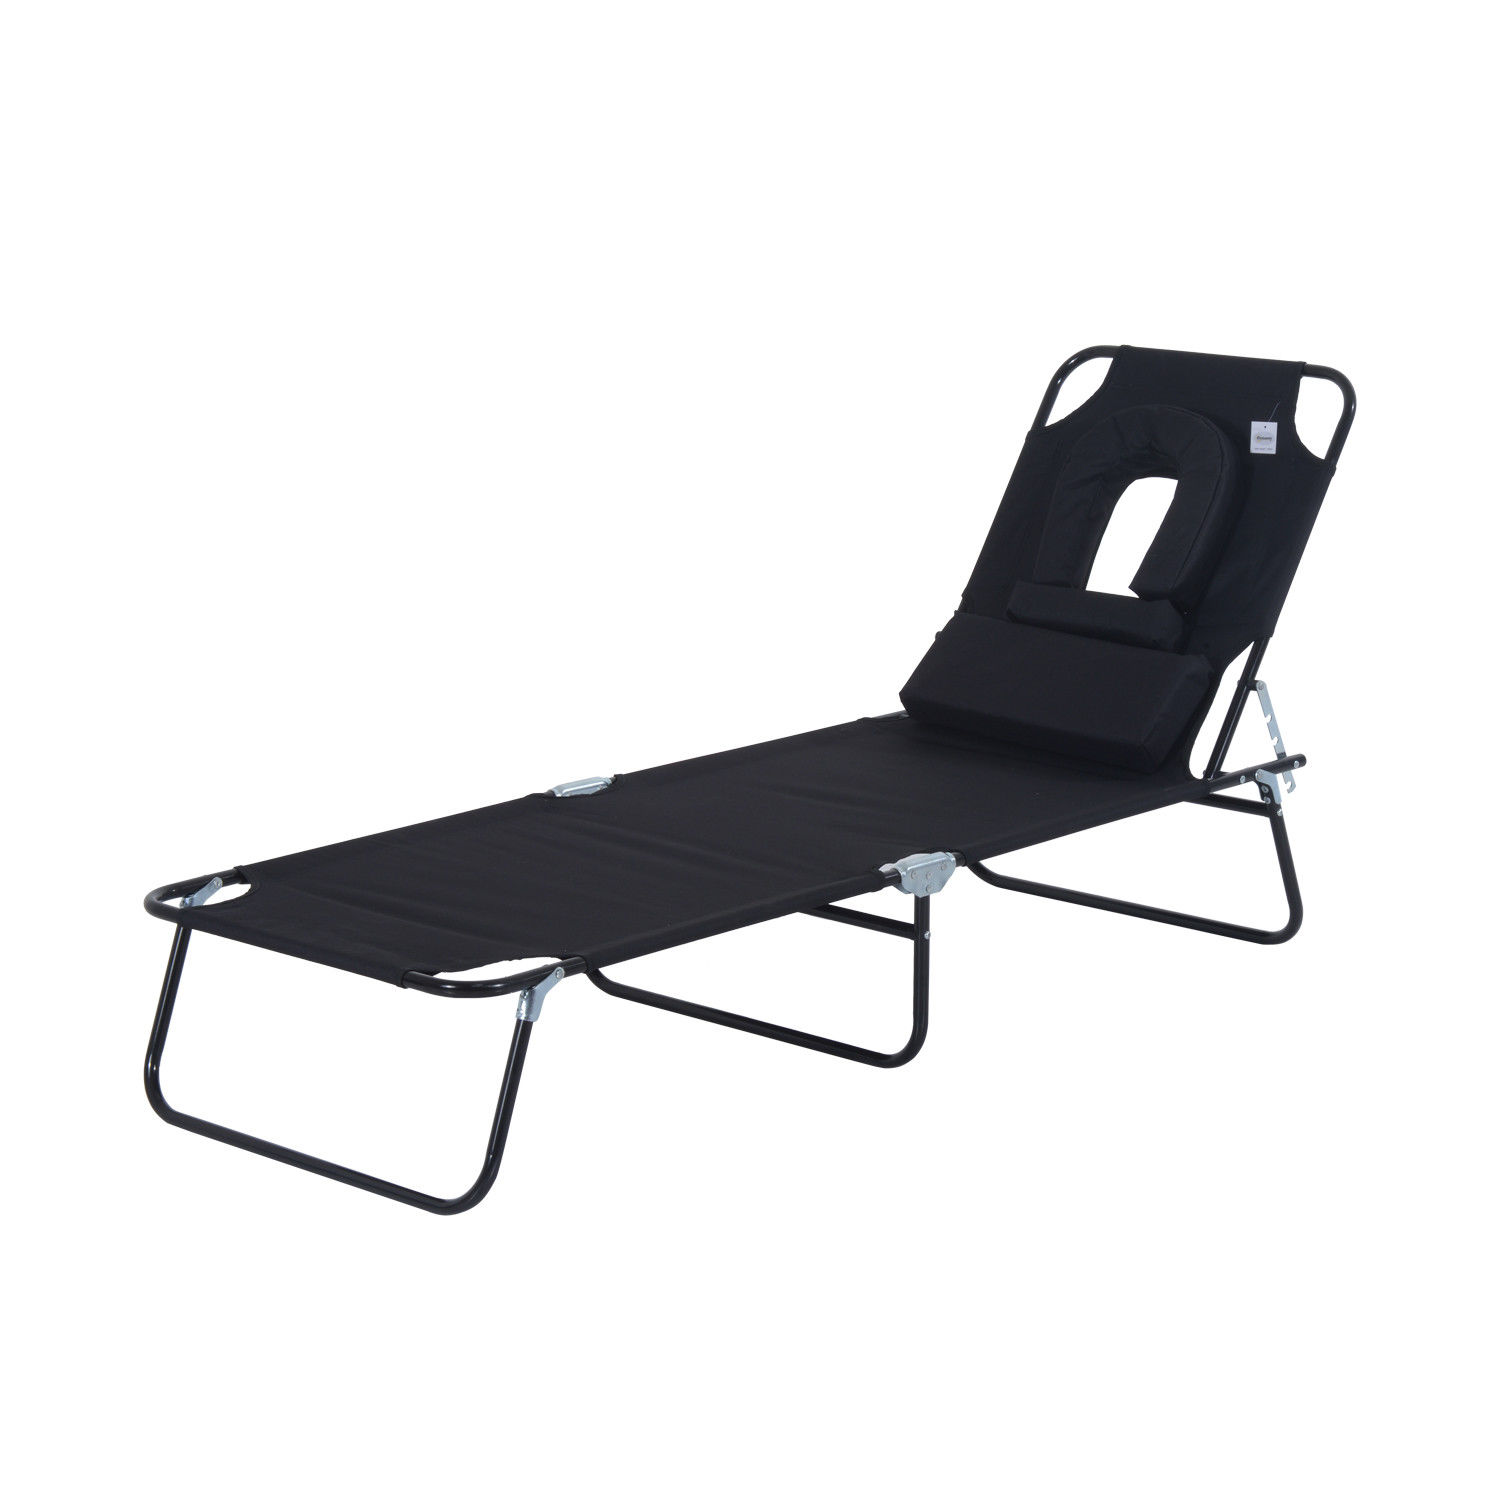 lawn lounger lounge pool patio sun folding beach chair chaise reclining recliner outdoor itm